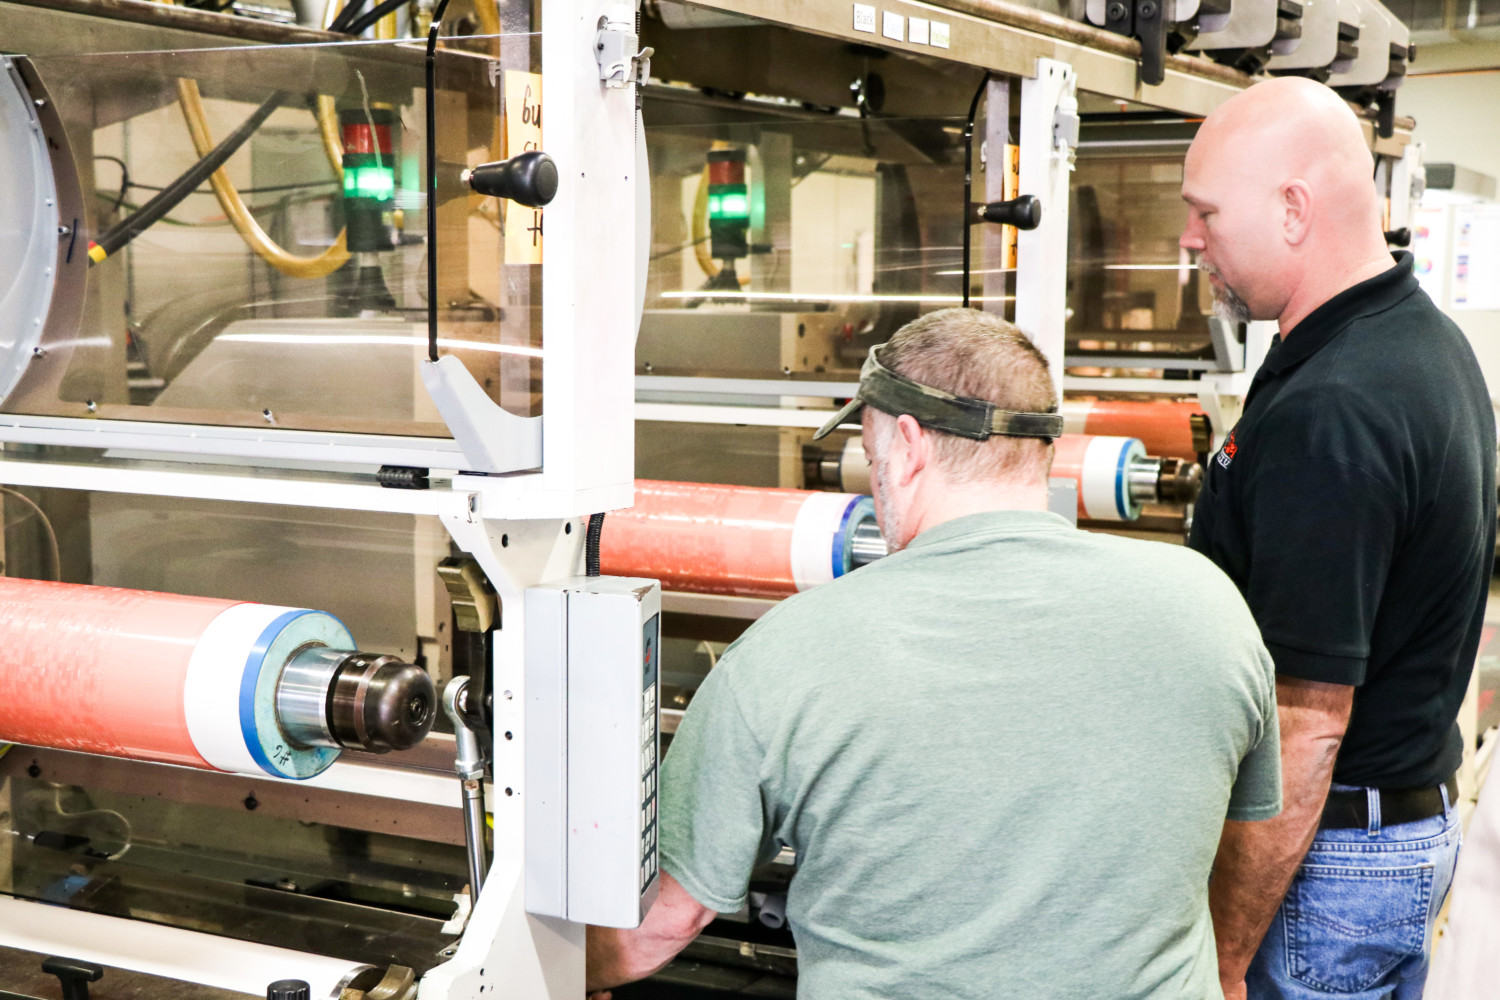 Course participants can get hands-on experience with the flexographic press at the Sonoco Institute of Packaging Design and Graphics at Clemson University. (Photo/Provided)